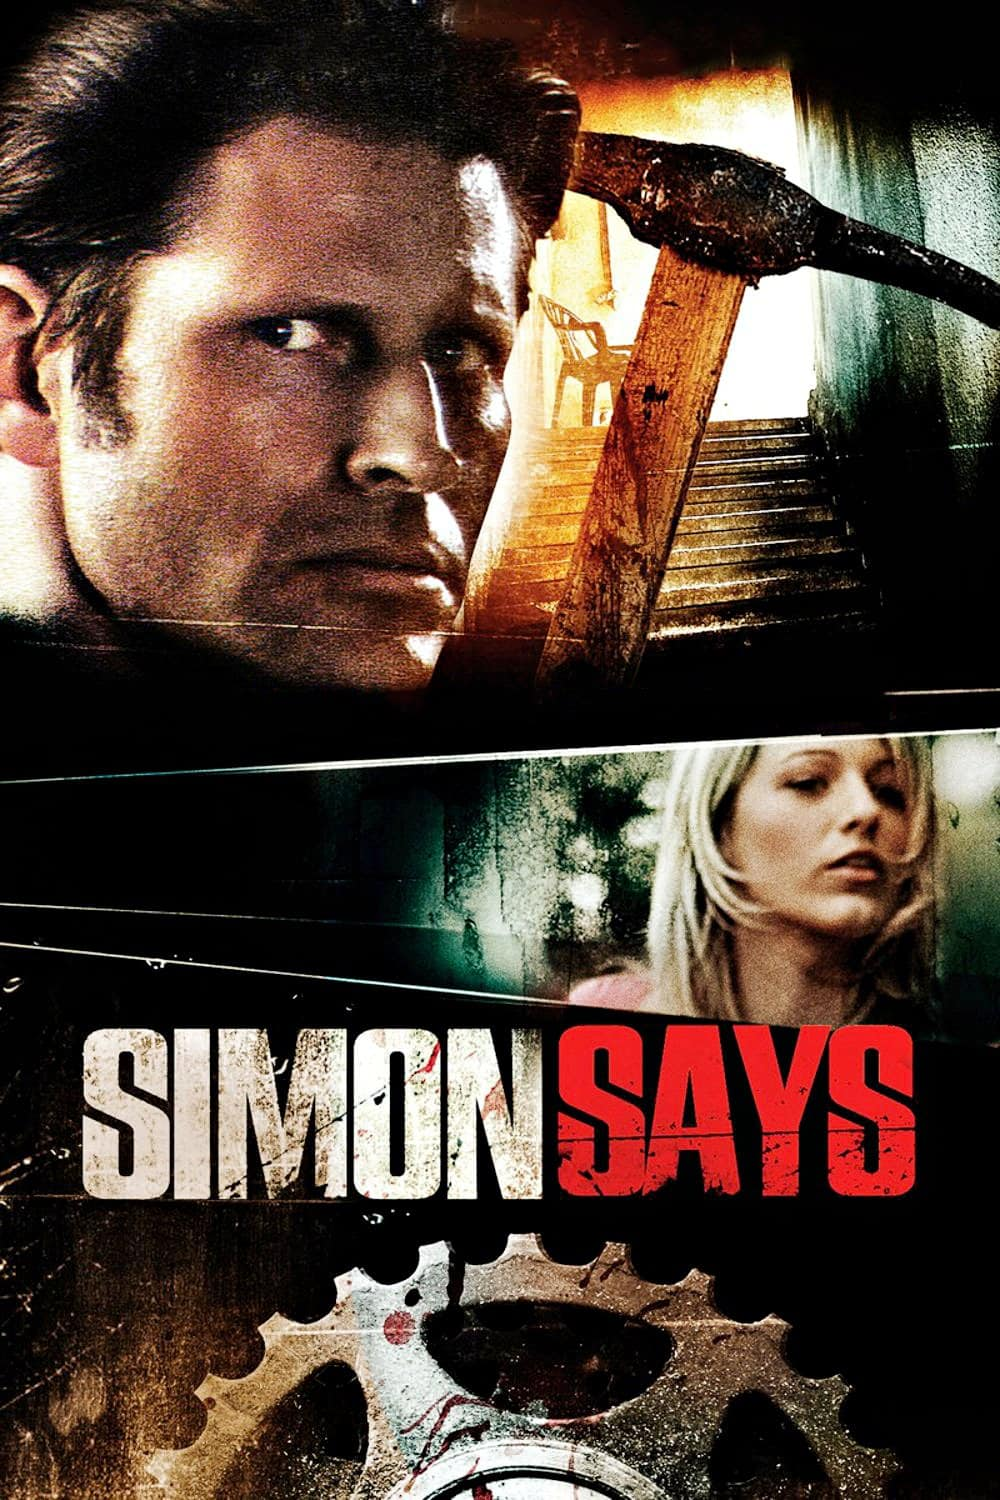 Simon Says, 2006